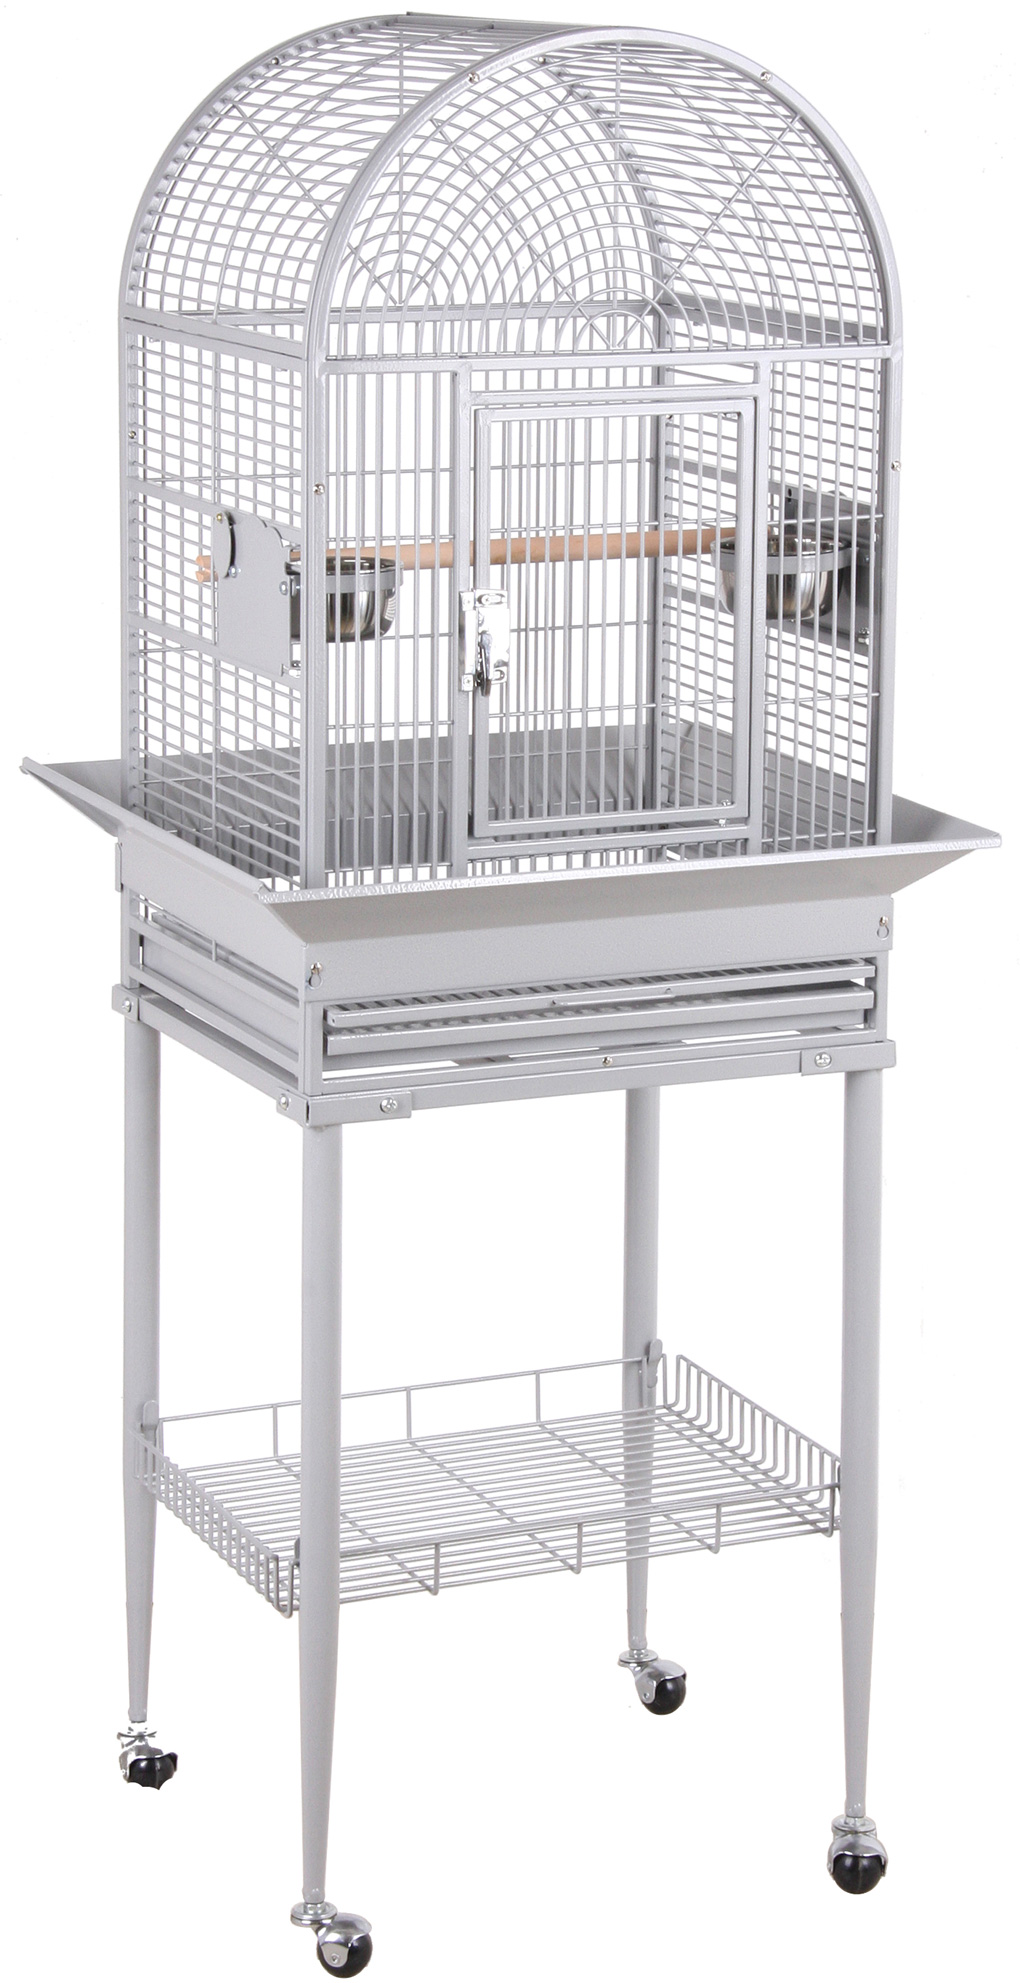 Hq Medium Arch Bird Cage 26x20 By Birdscomfort Com